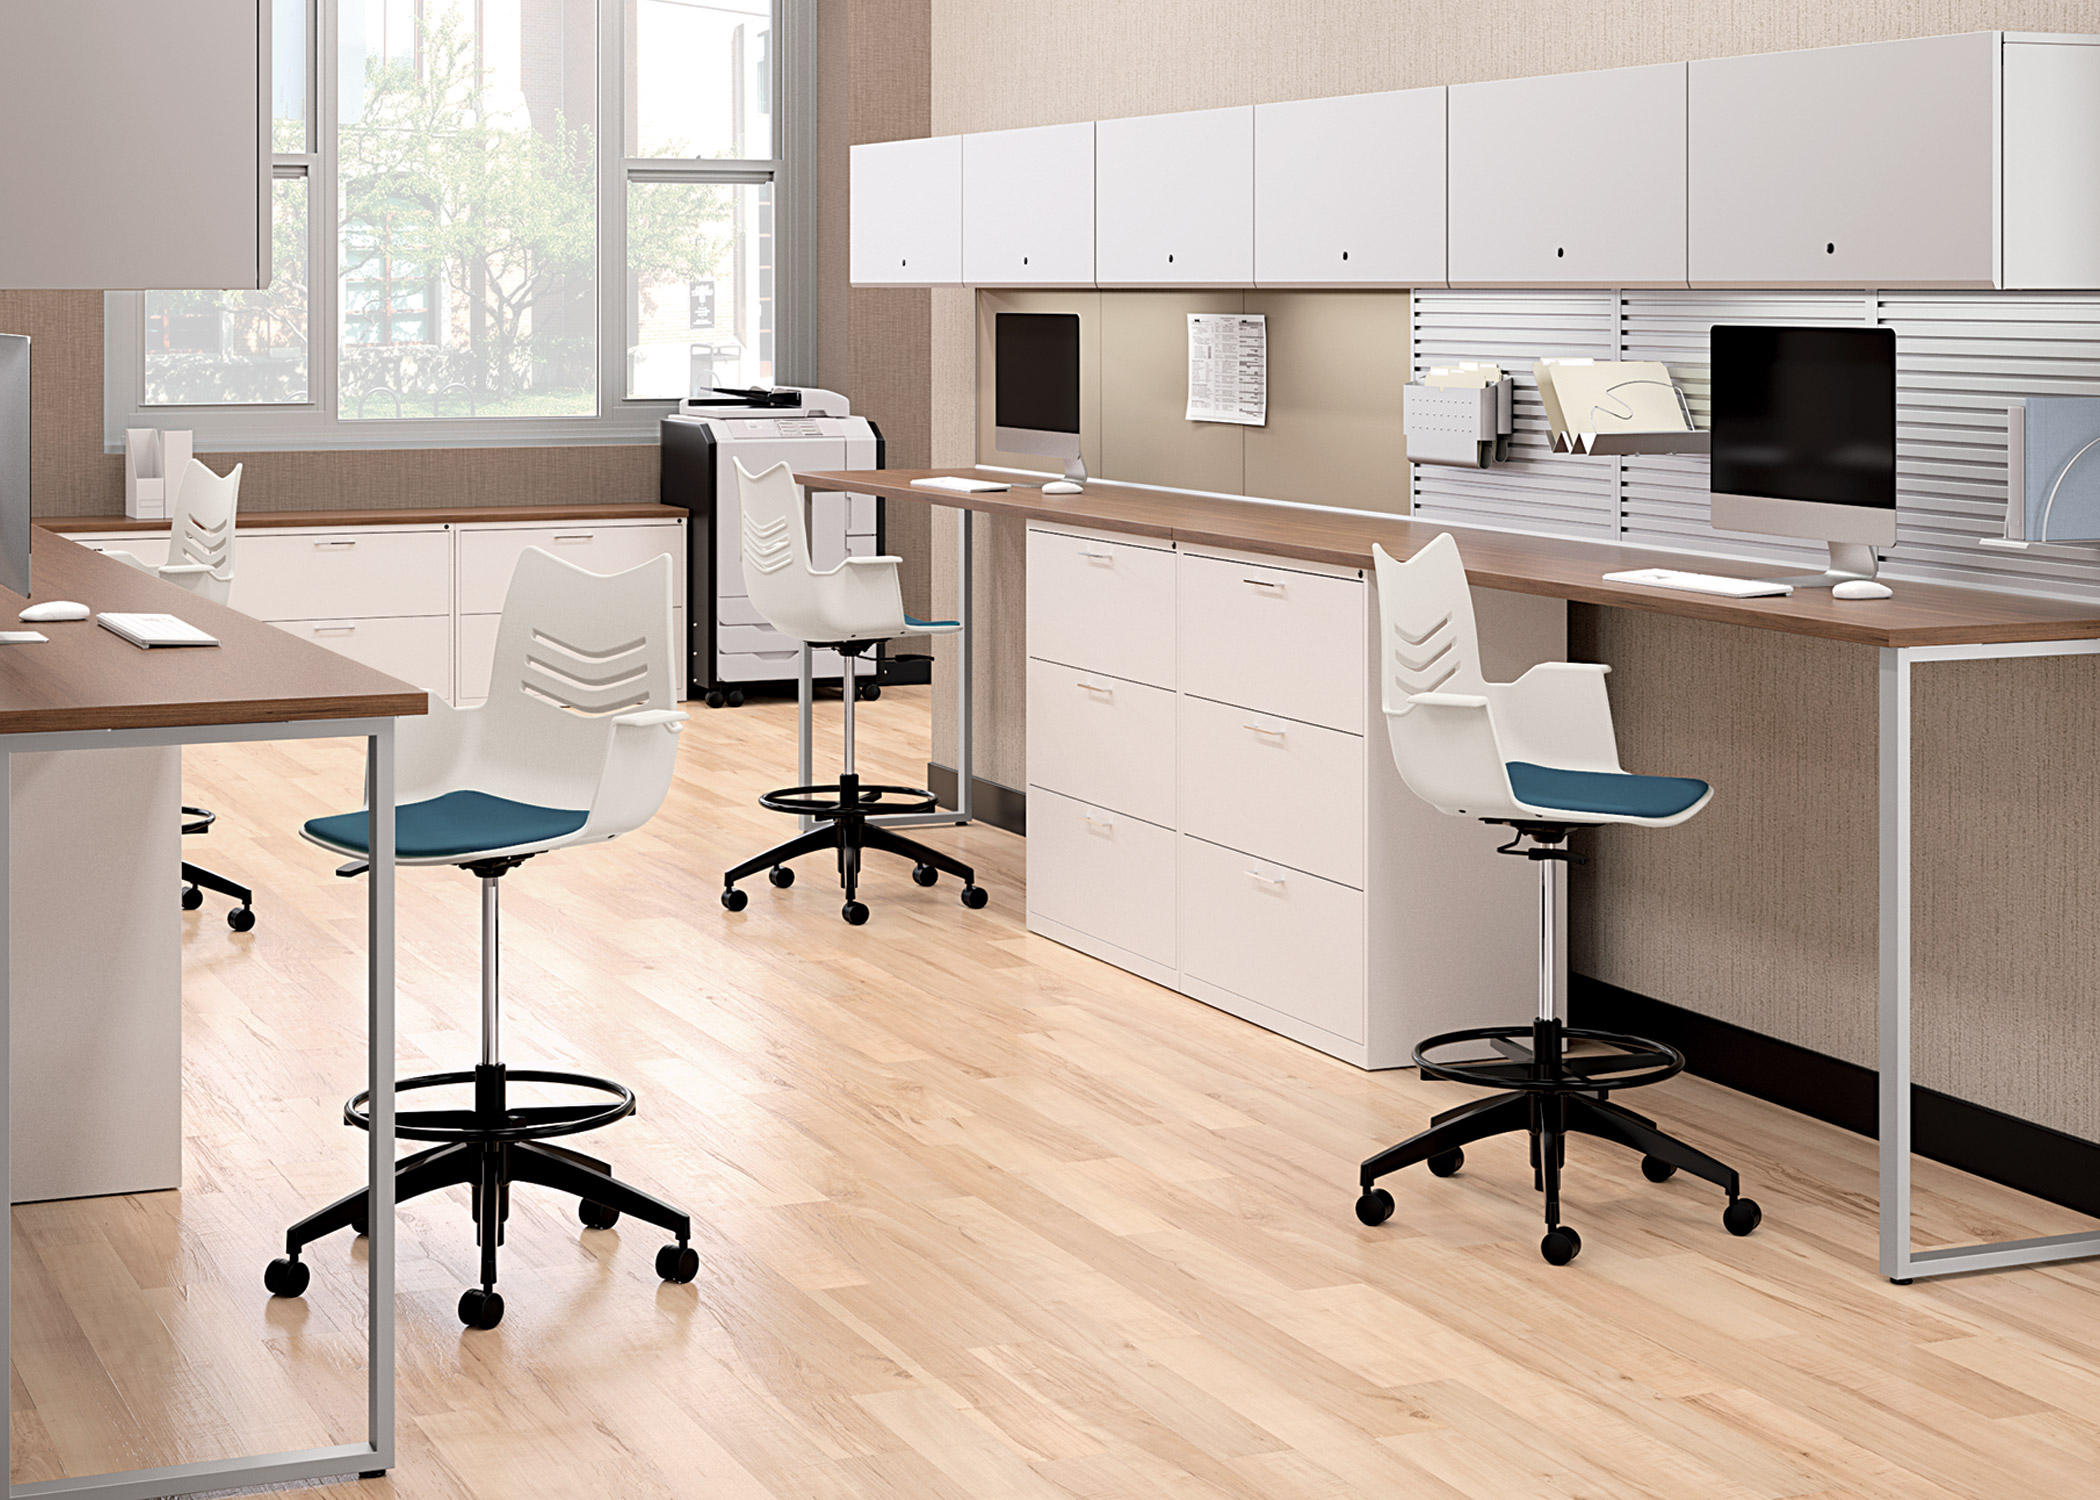 familz forniture essay Ikea essay 2579 words - 10 pages 1 introductionikea, the famous swedish company, is the one of the largest furniture retailers in the world, which specializes in modern but inexpensive scandinavian designed furniture.